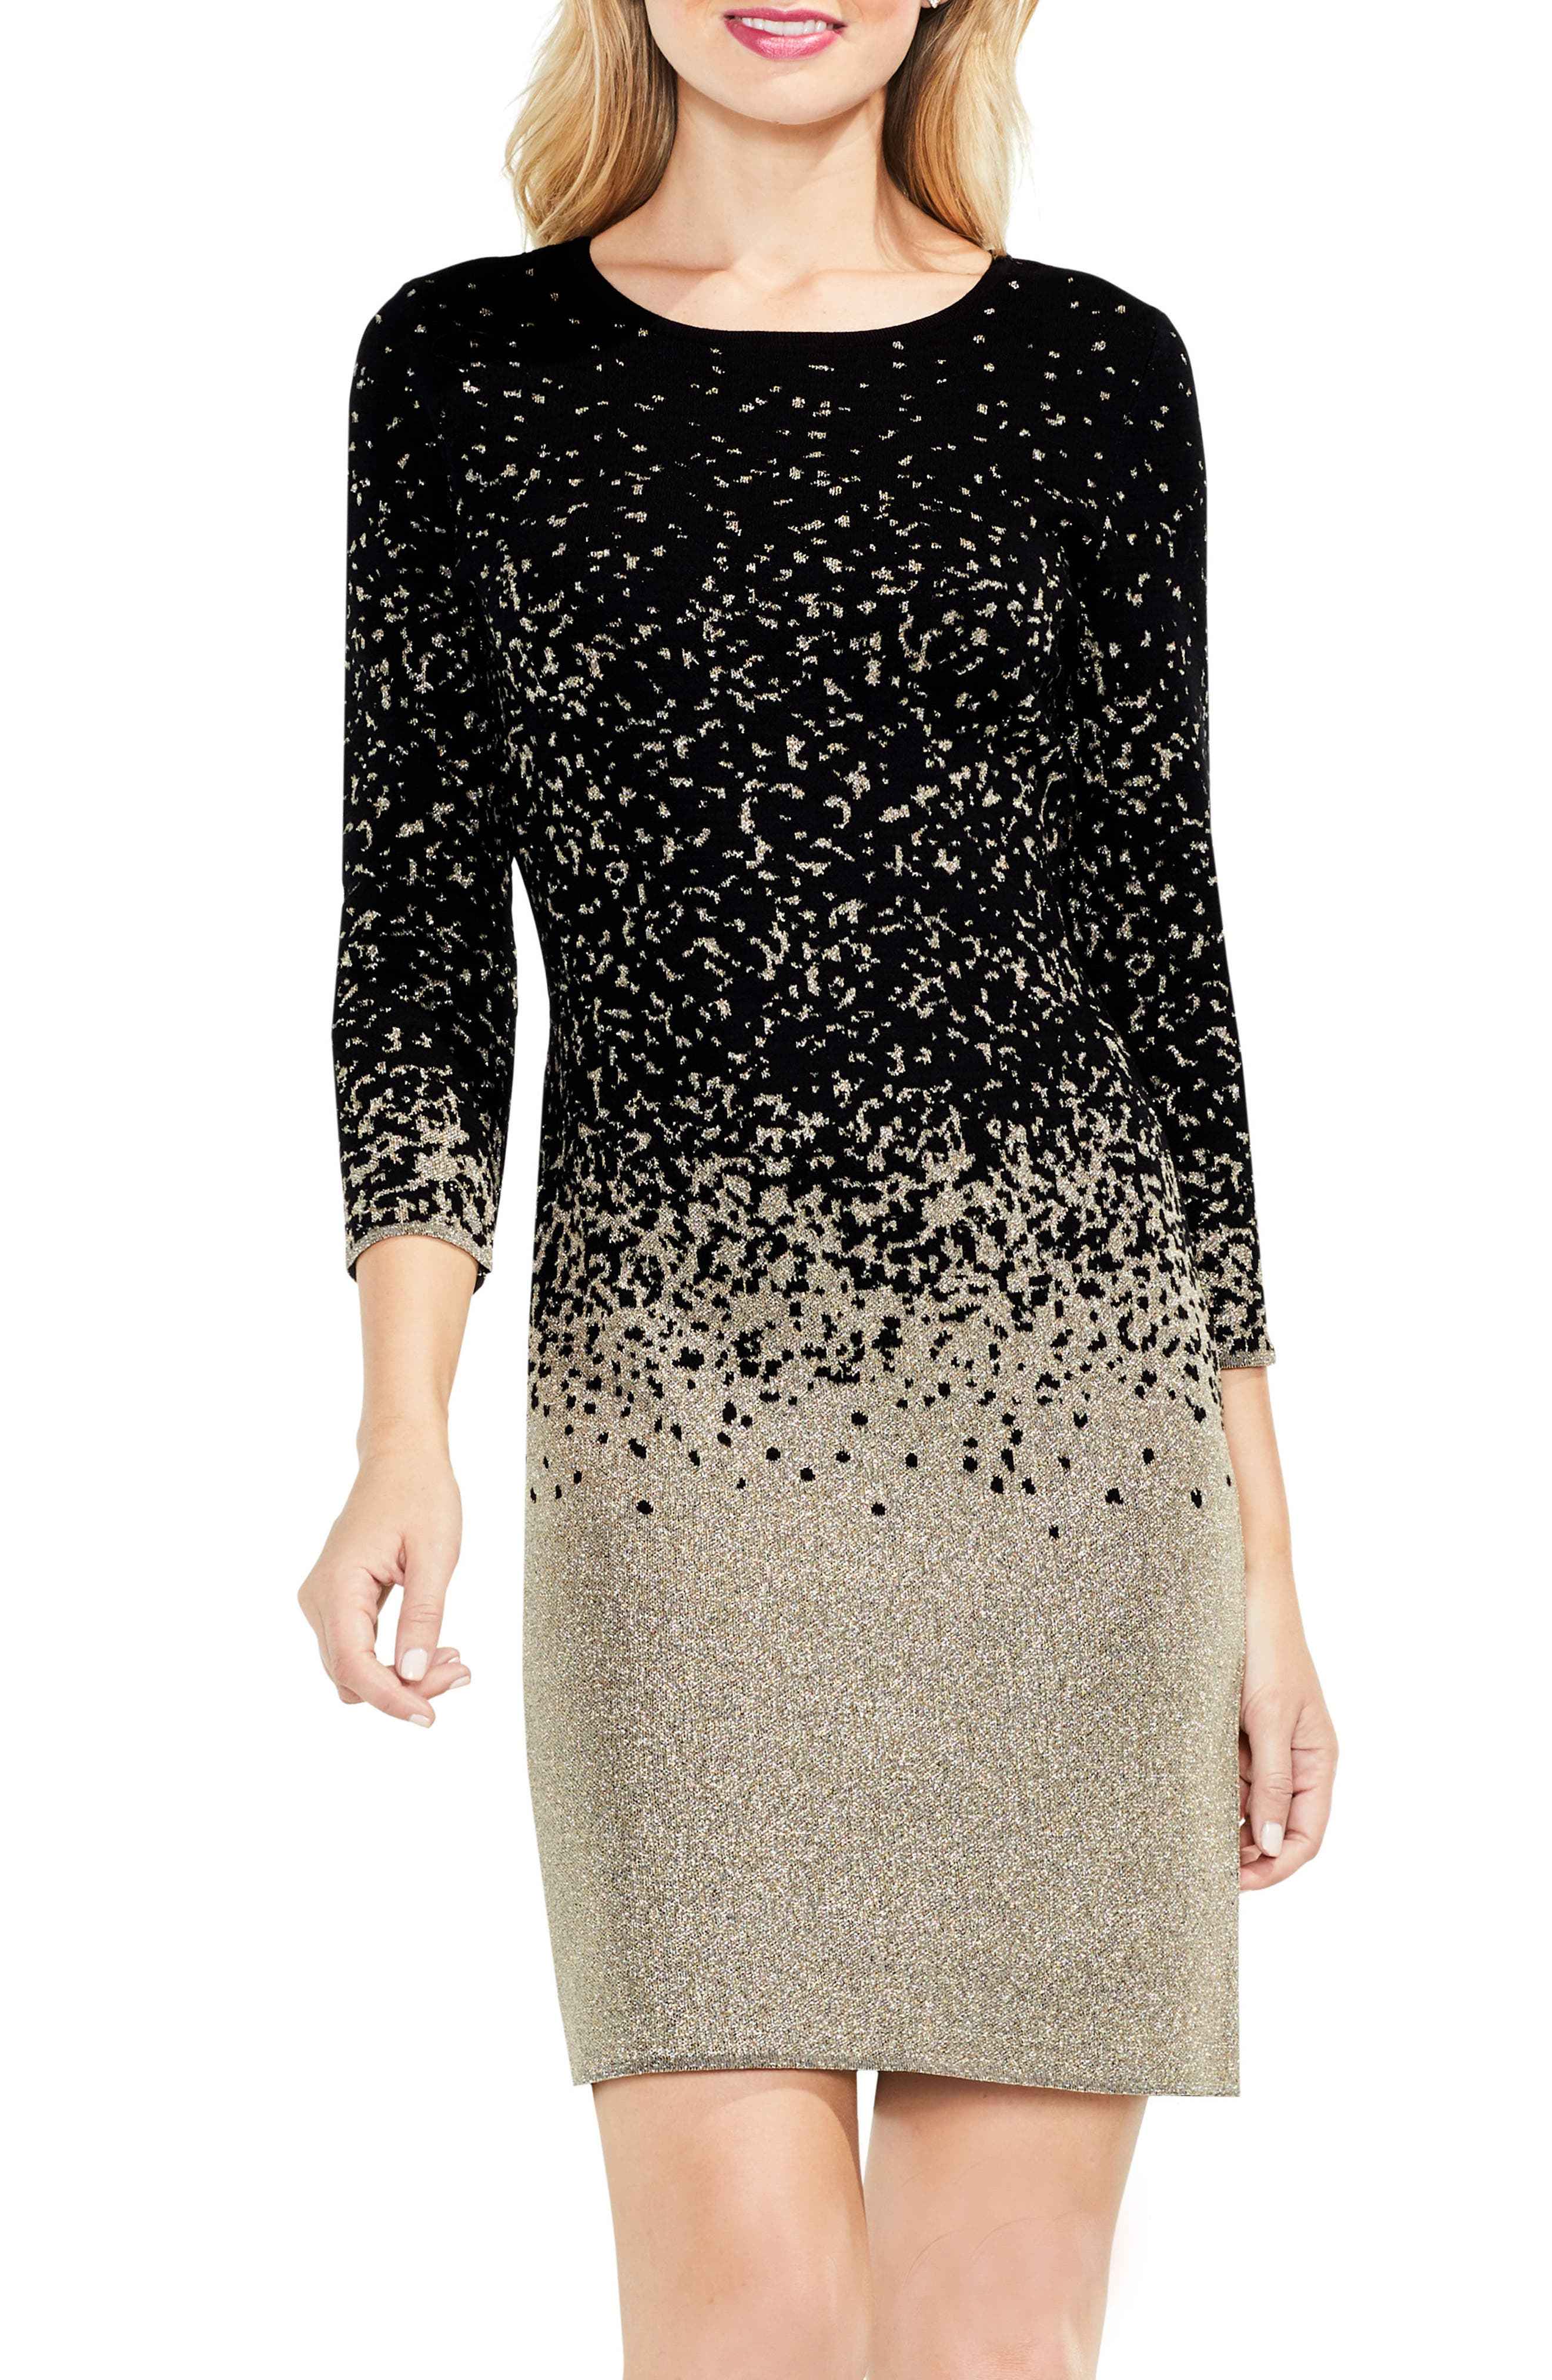 Main Image - Vince Camuto Metallic Ombrè Sweater Dress